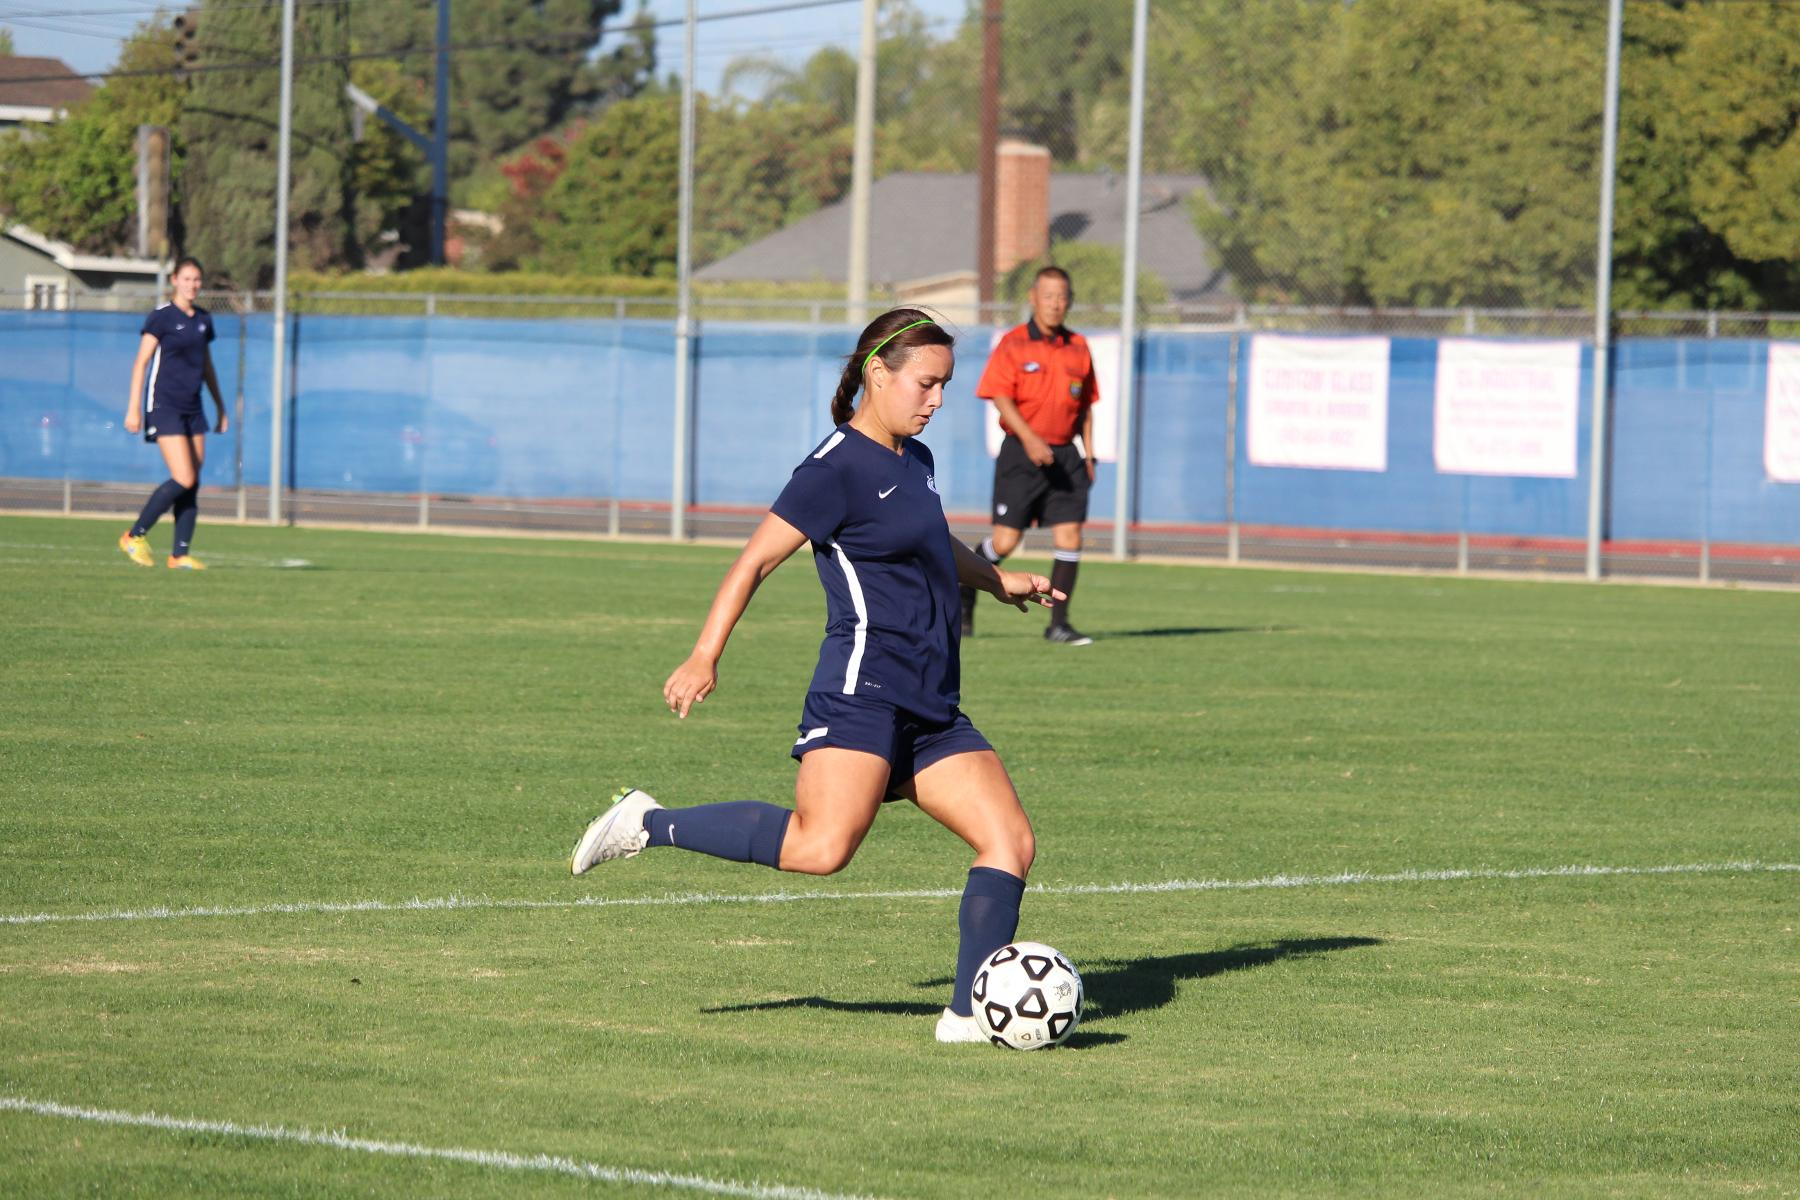 Chargers Roll Past Norco College, 3-0